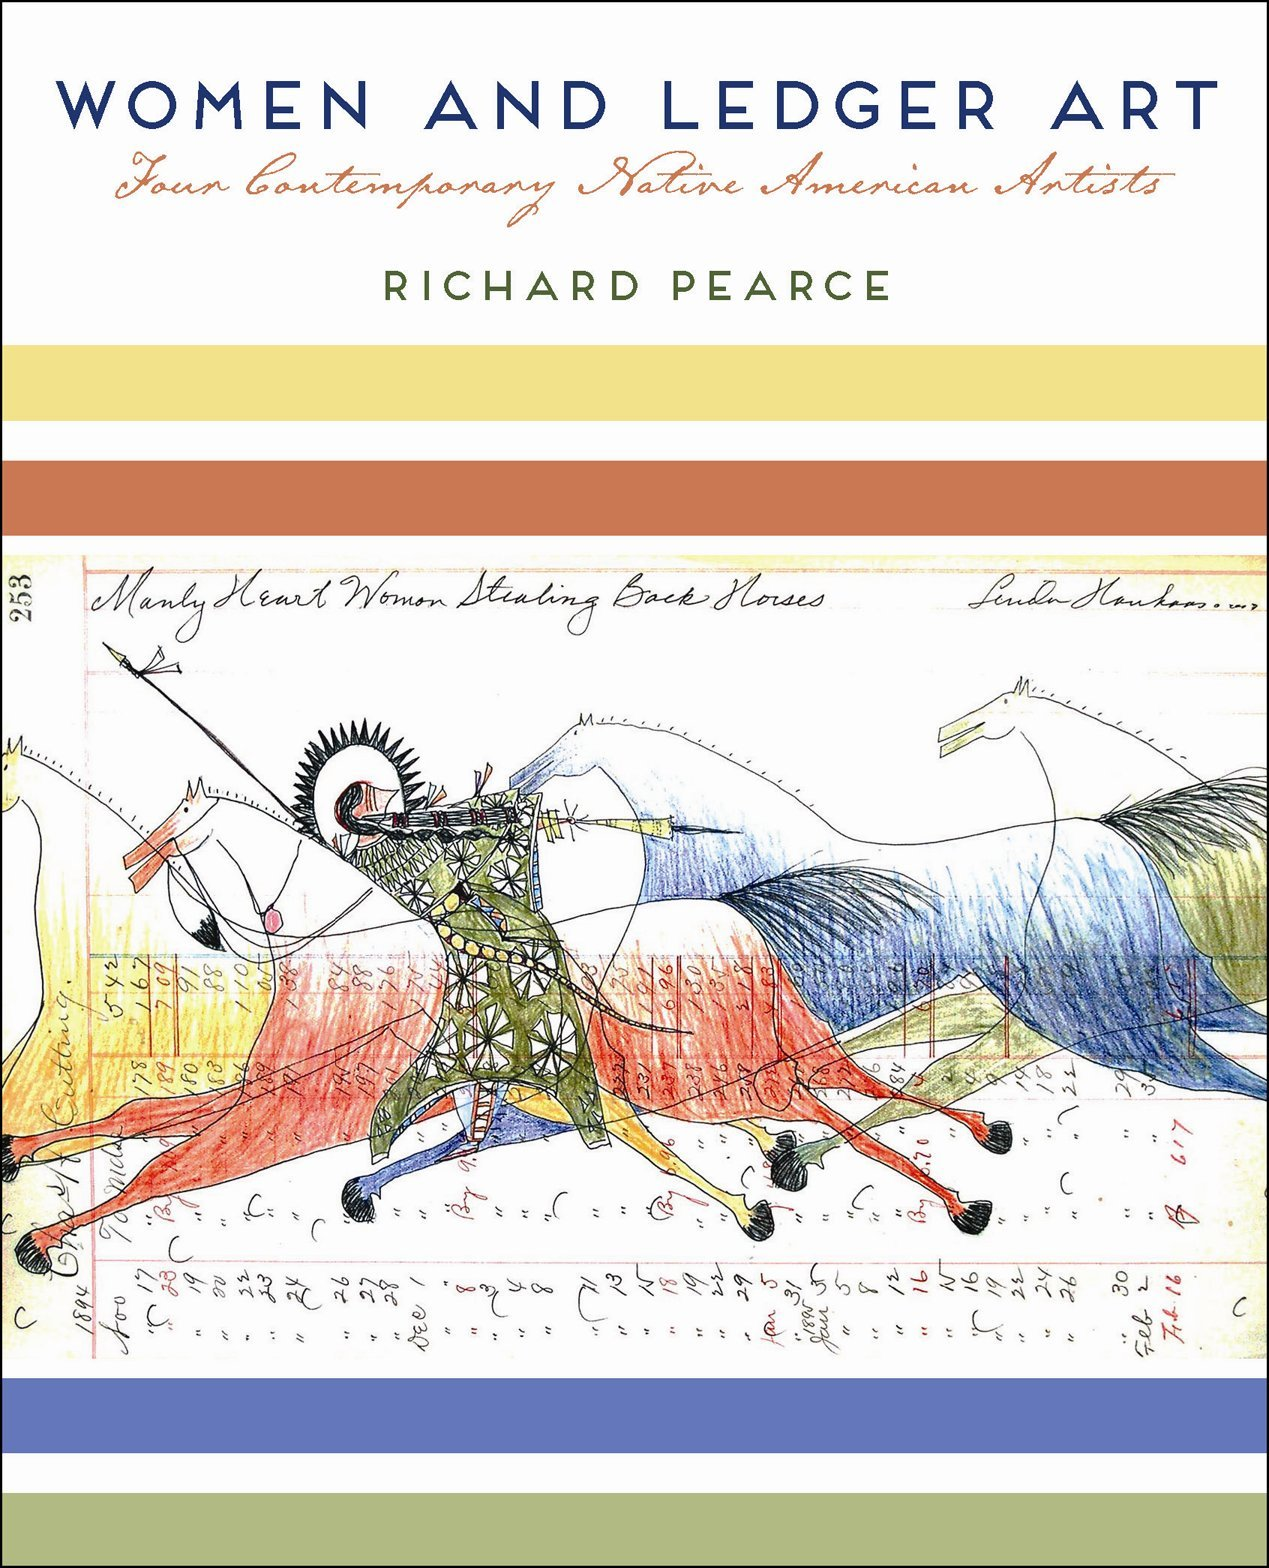 Women and Ledger Art: Four Contemporary Native American Artists pdf